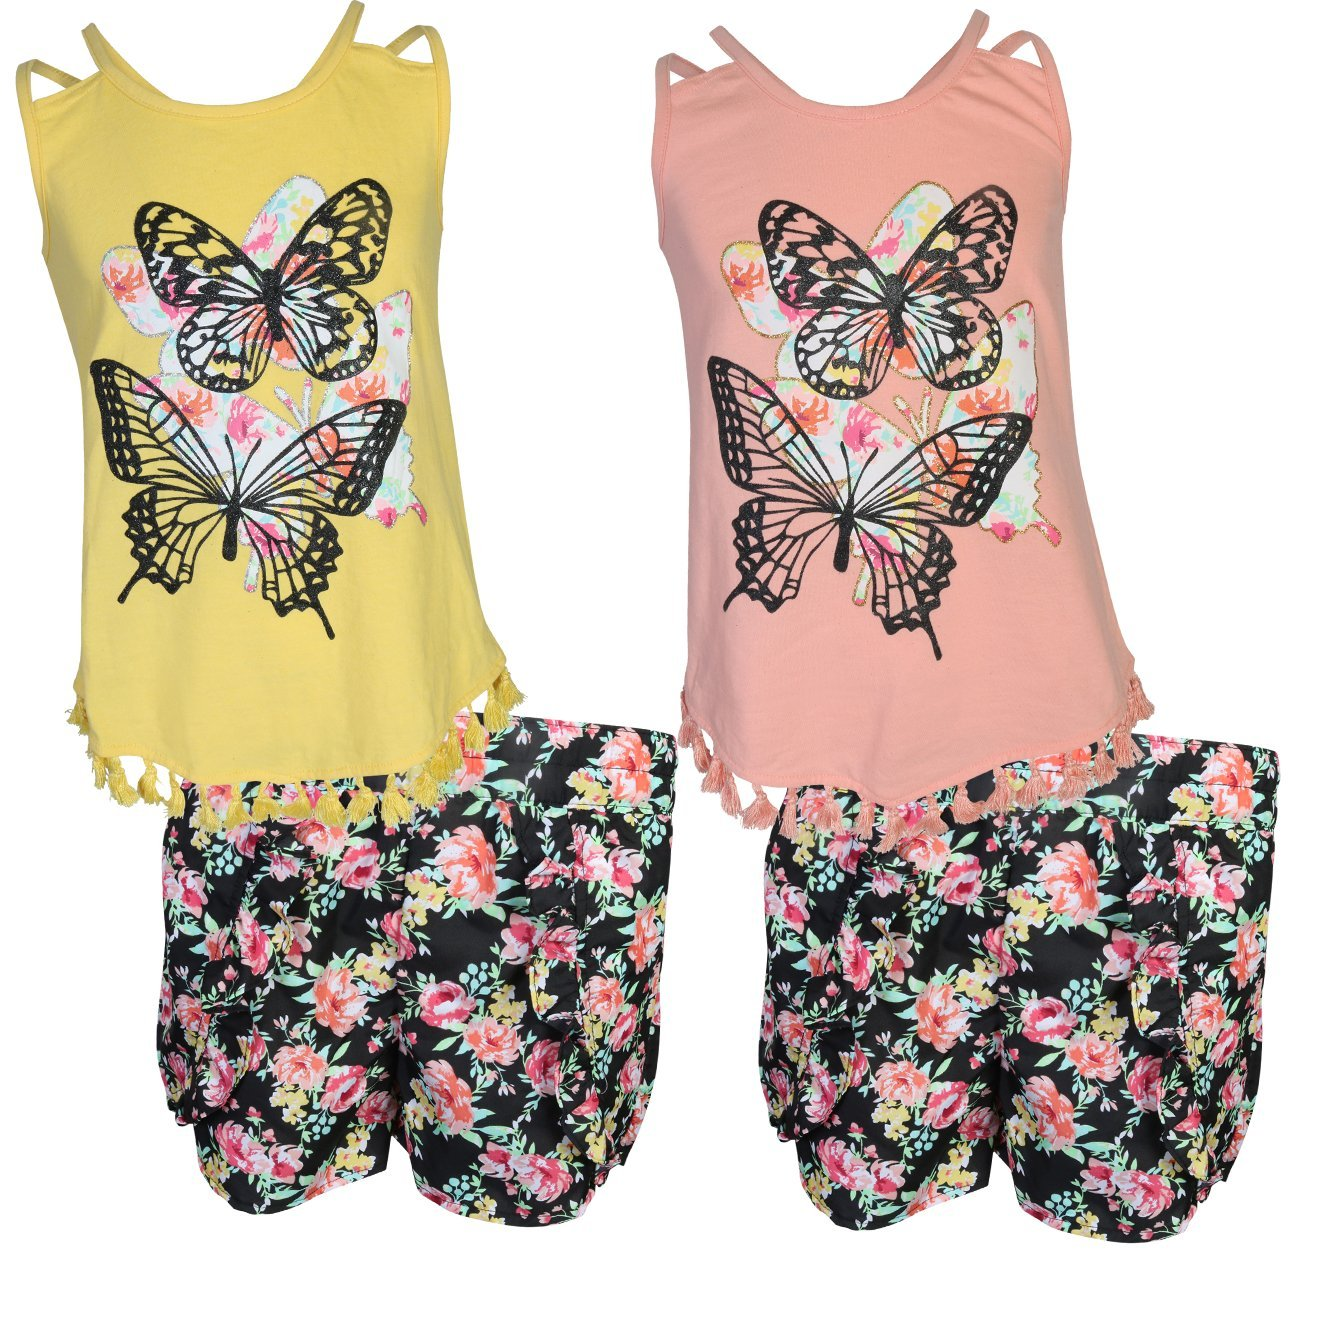 dollhouse Girls 4-Piece Graphic Top and Short Set, Butterfly, Size 5/6'